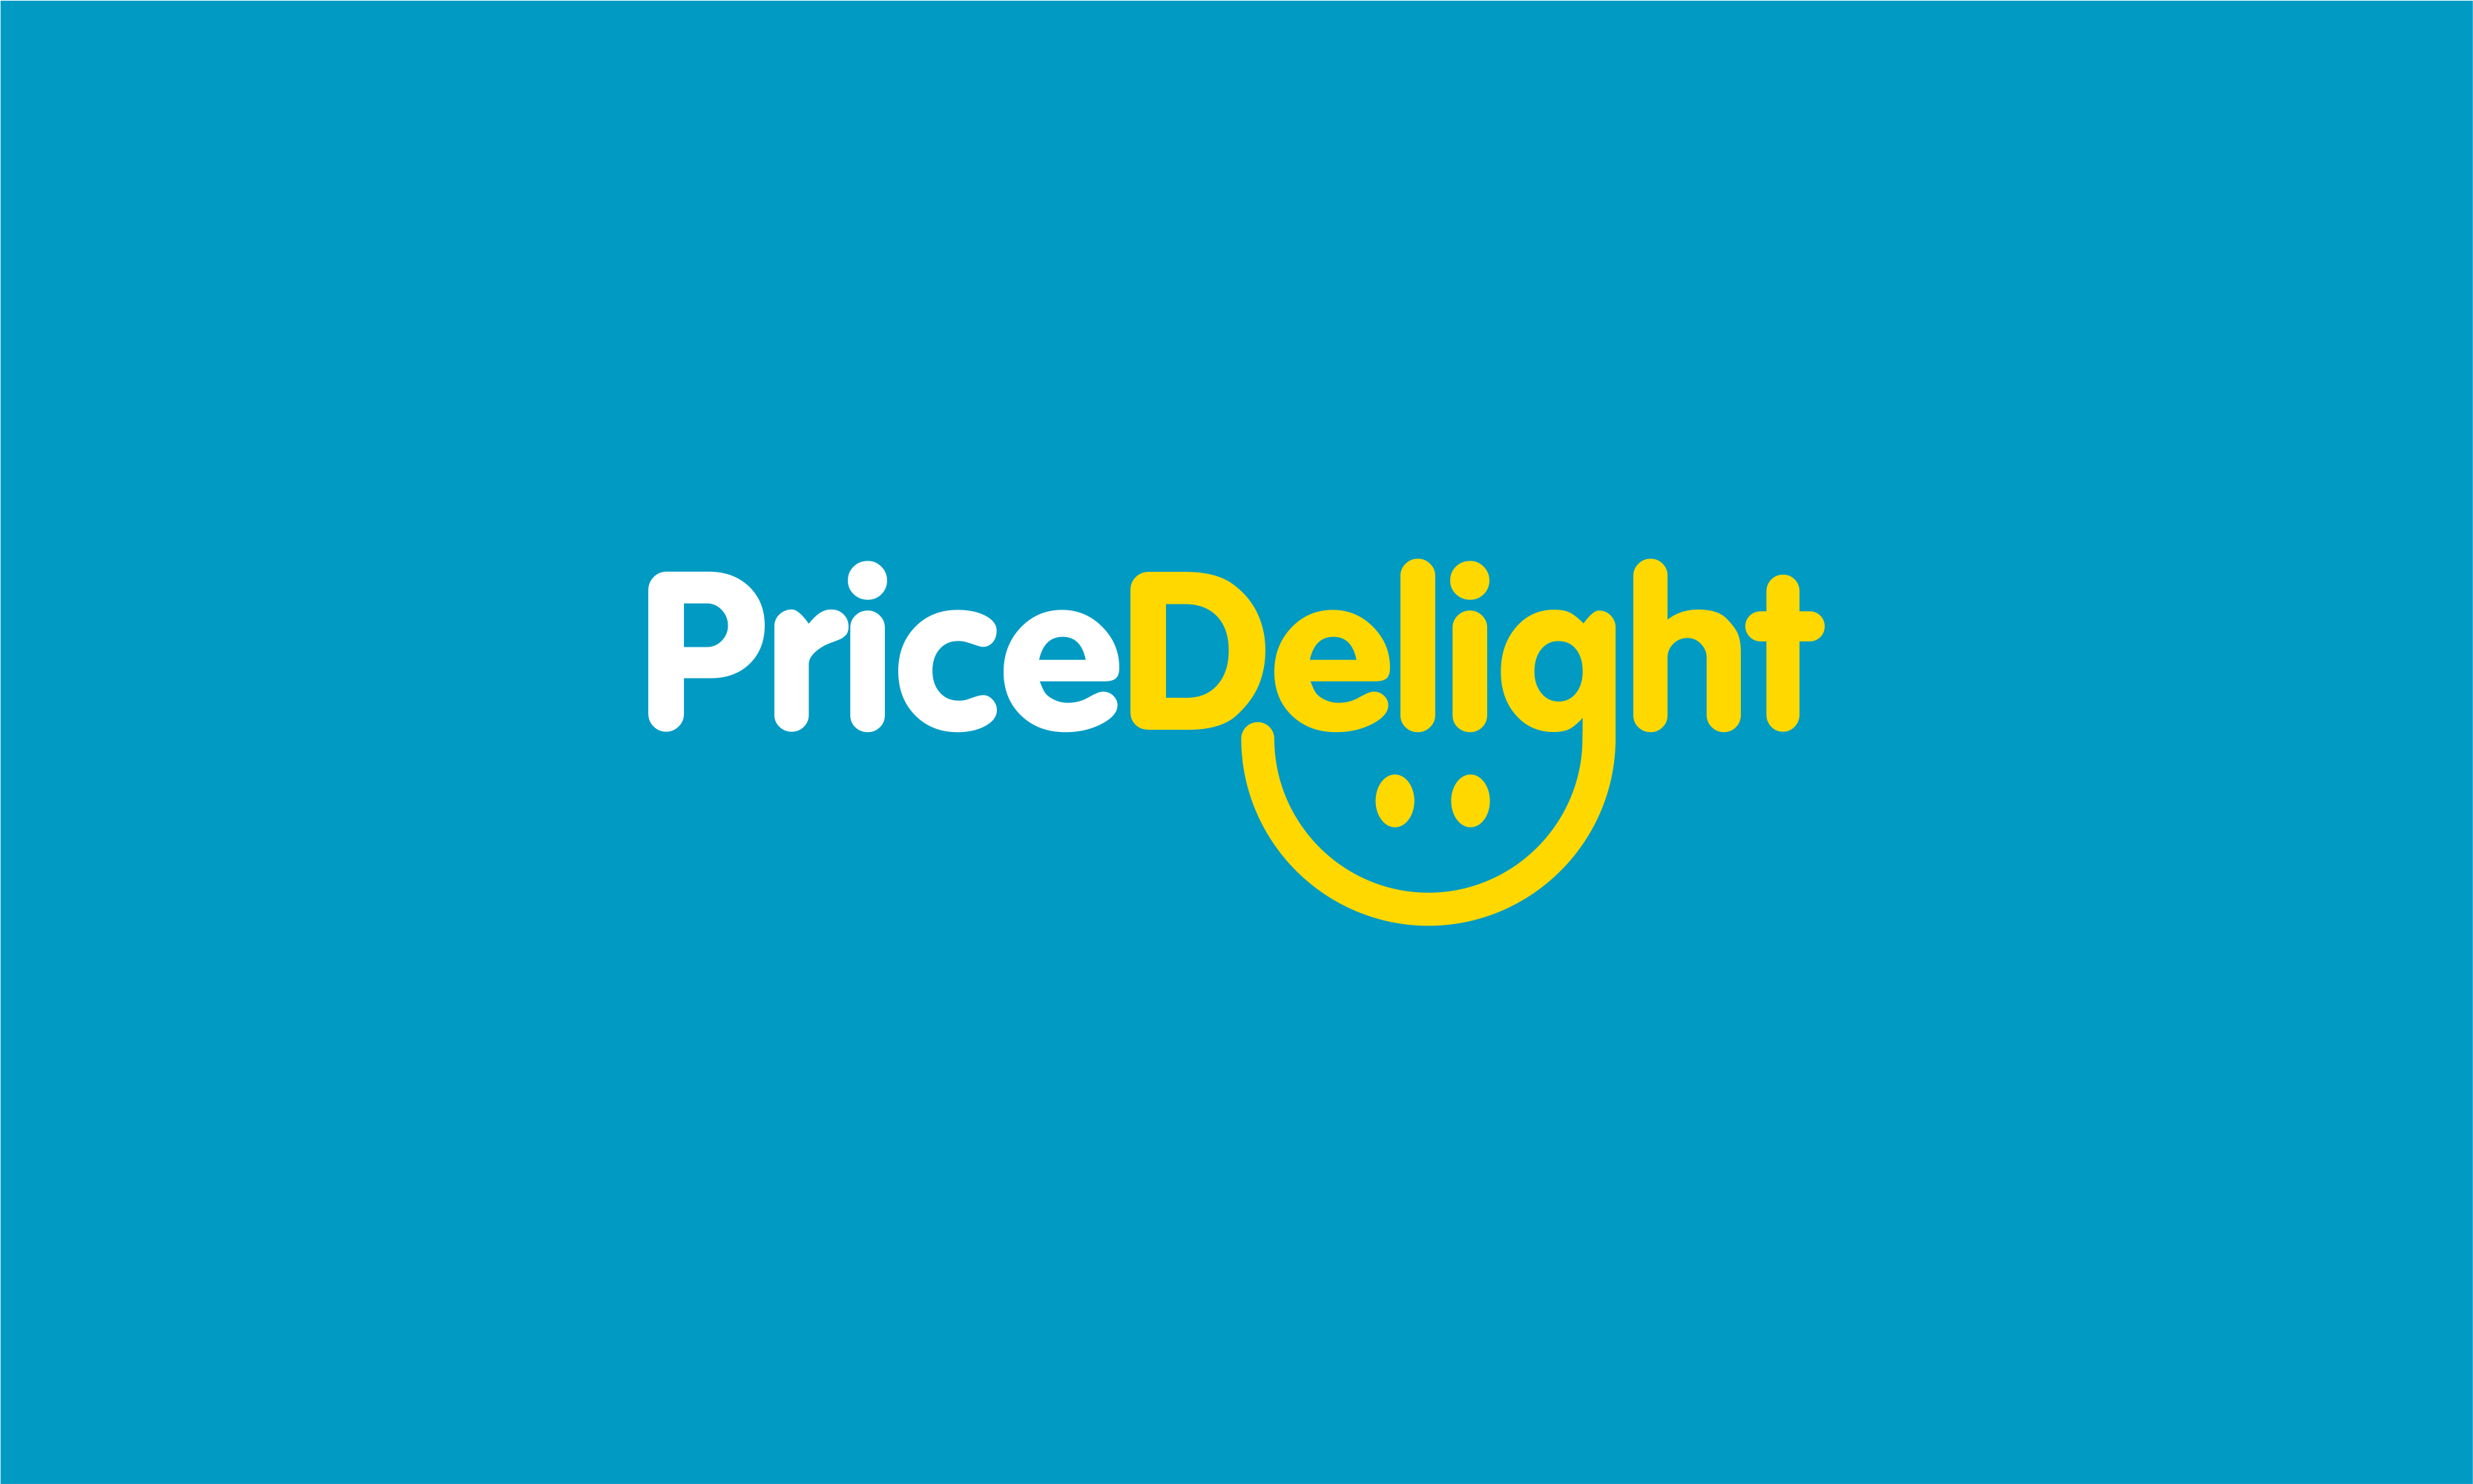 Pricedelight